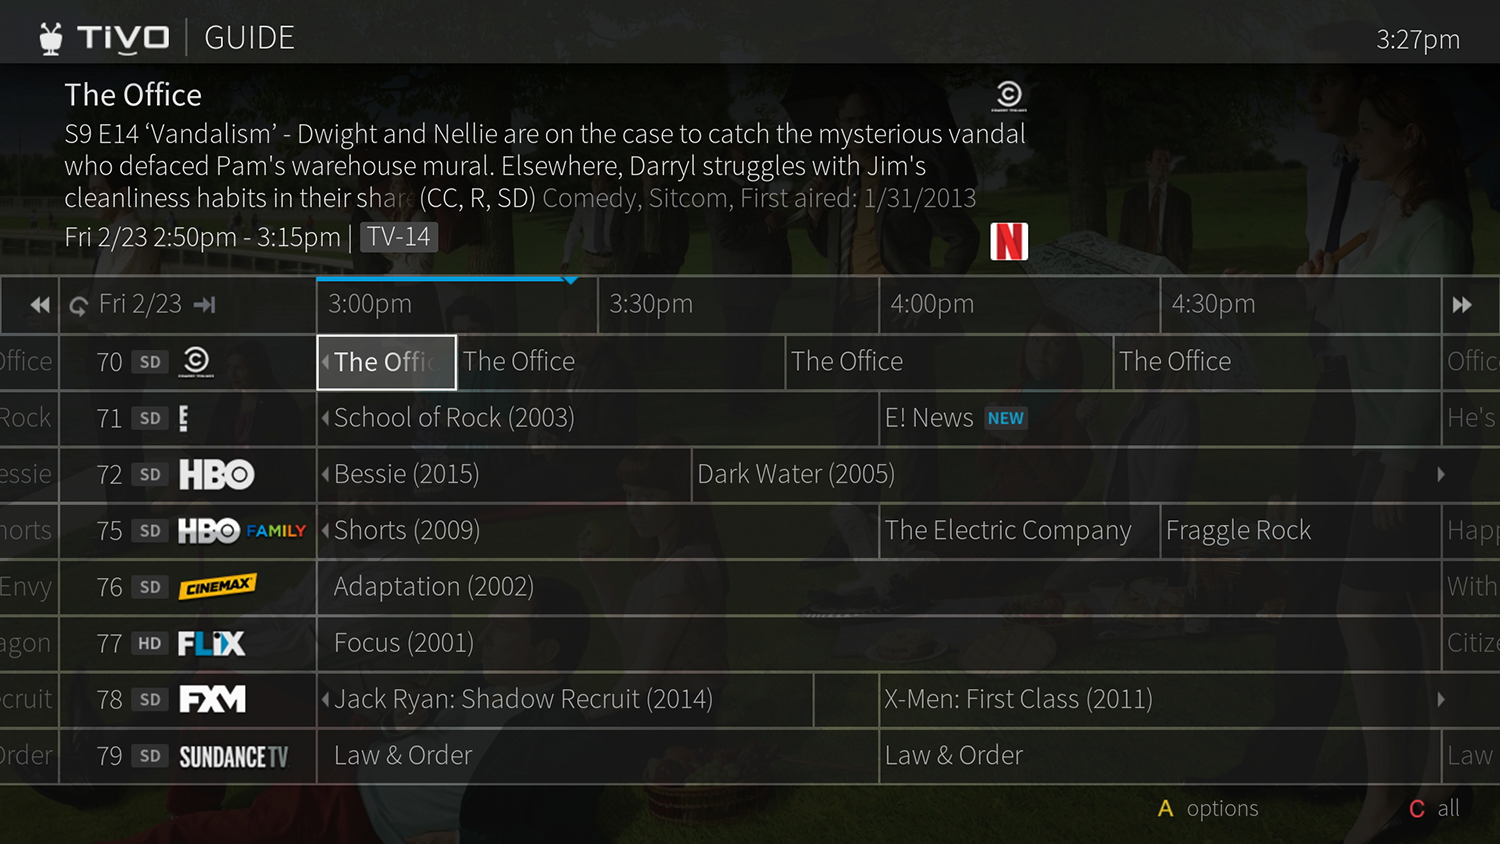 The Definitive List of TiVo Features - TiVo Blog